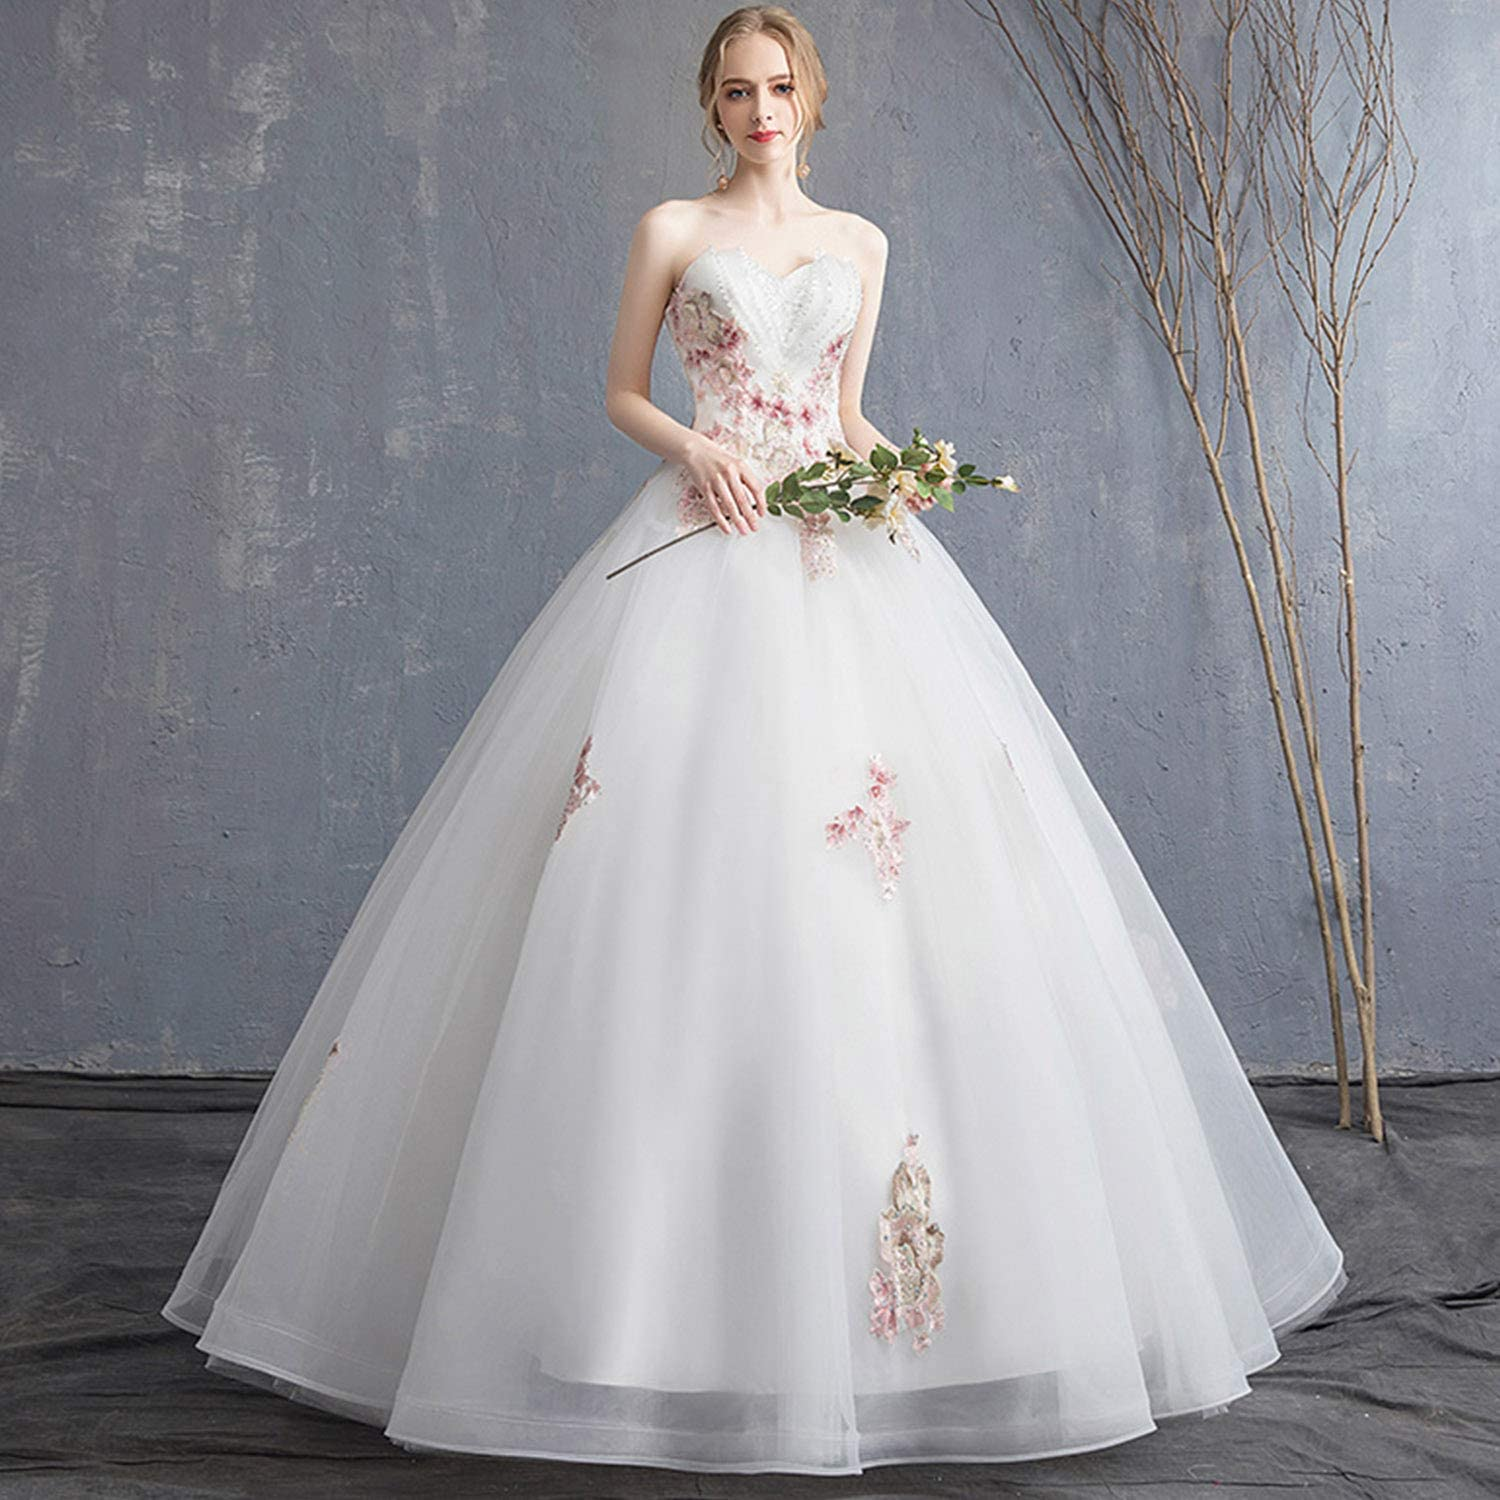 Elegant Bridal Wedding Dresses Slim High Waist Backless Floor Length Dresses with Lace Appliques Beads for Ceremony Evening Party Use